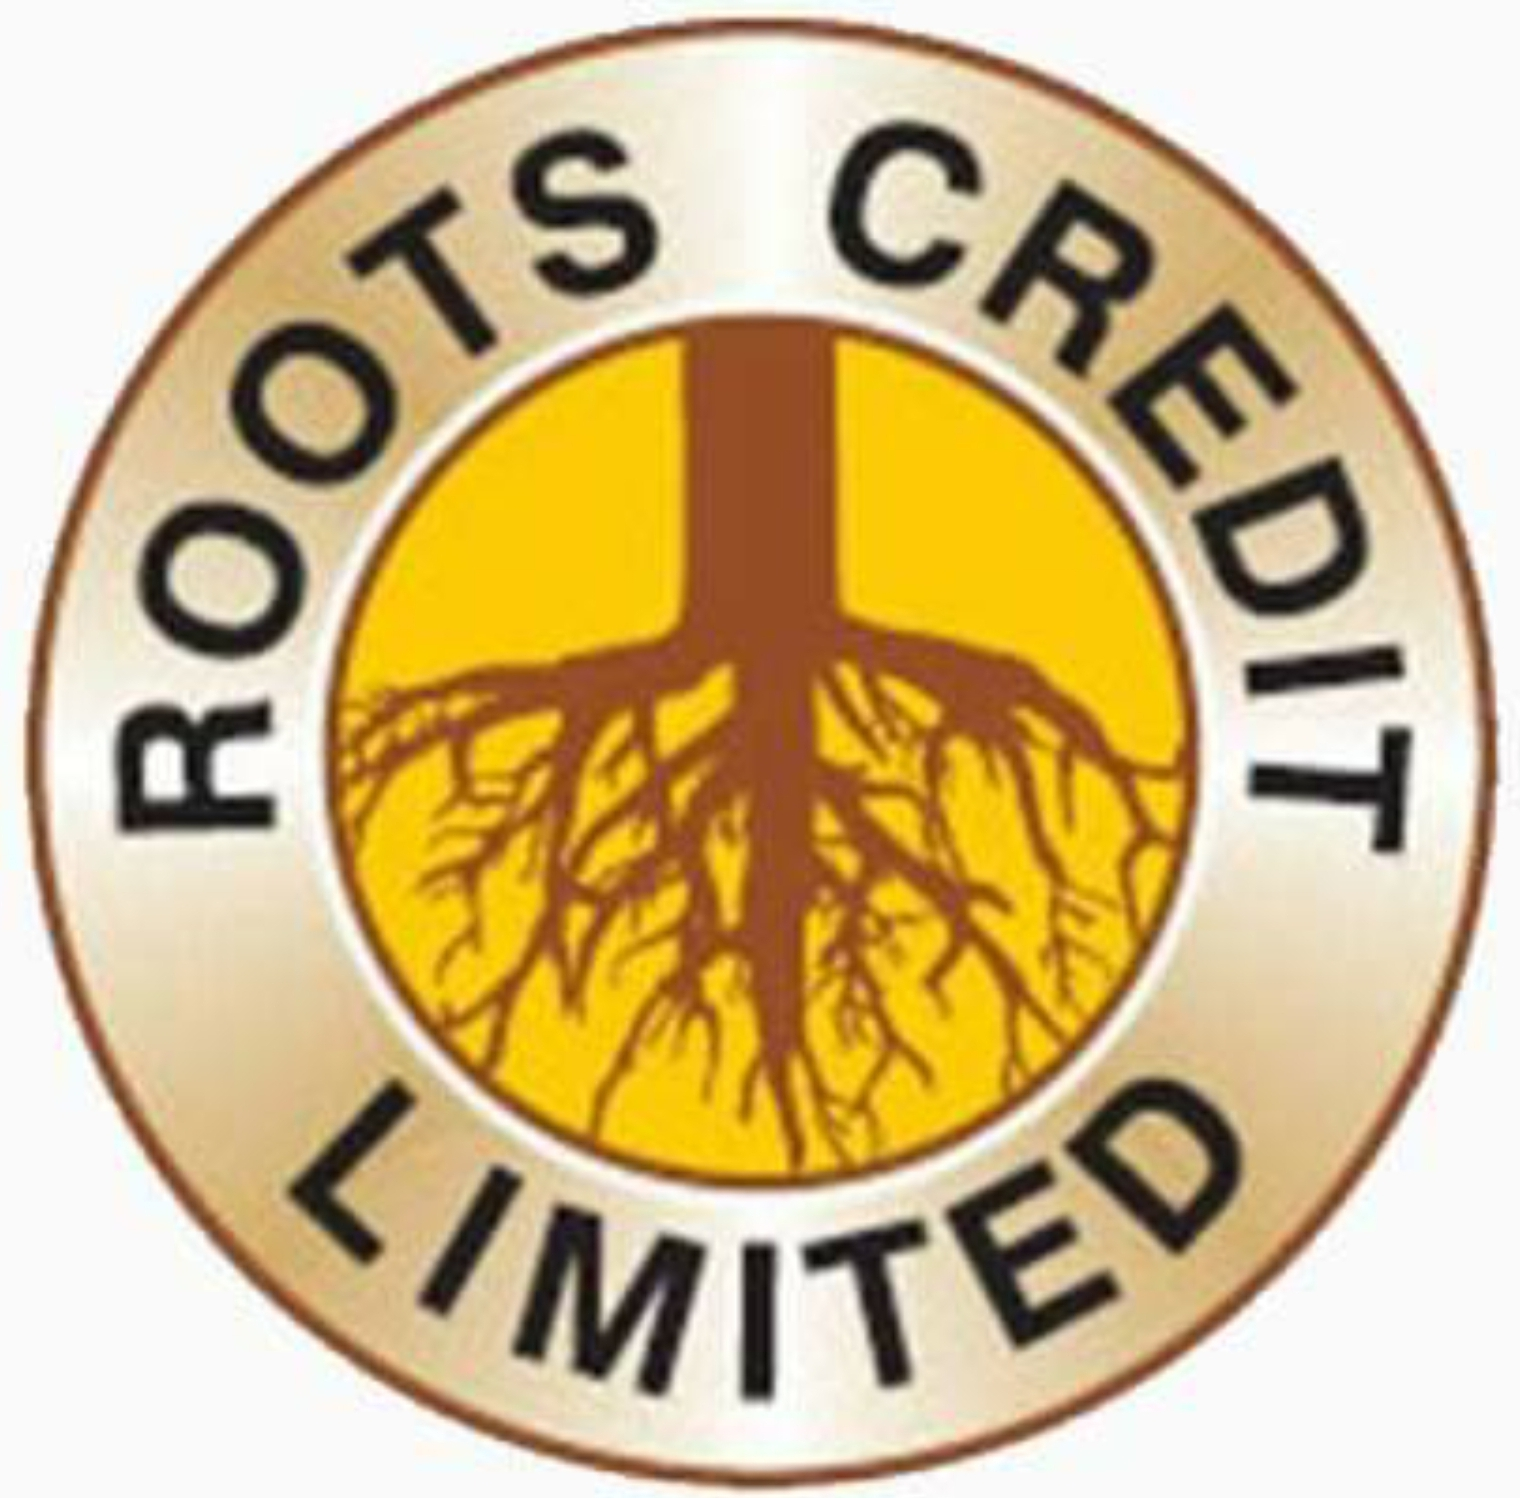 Roots Credit Limited